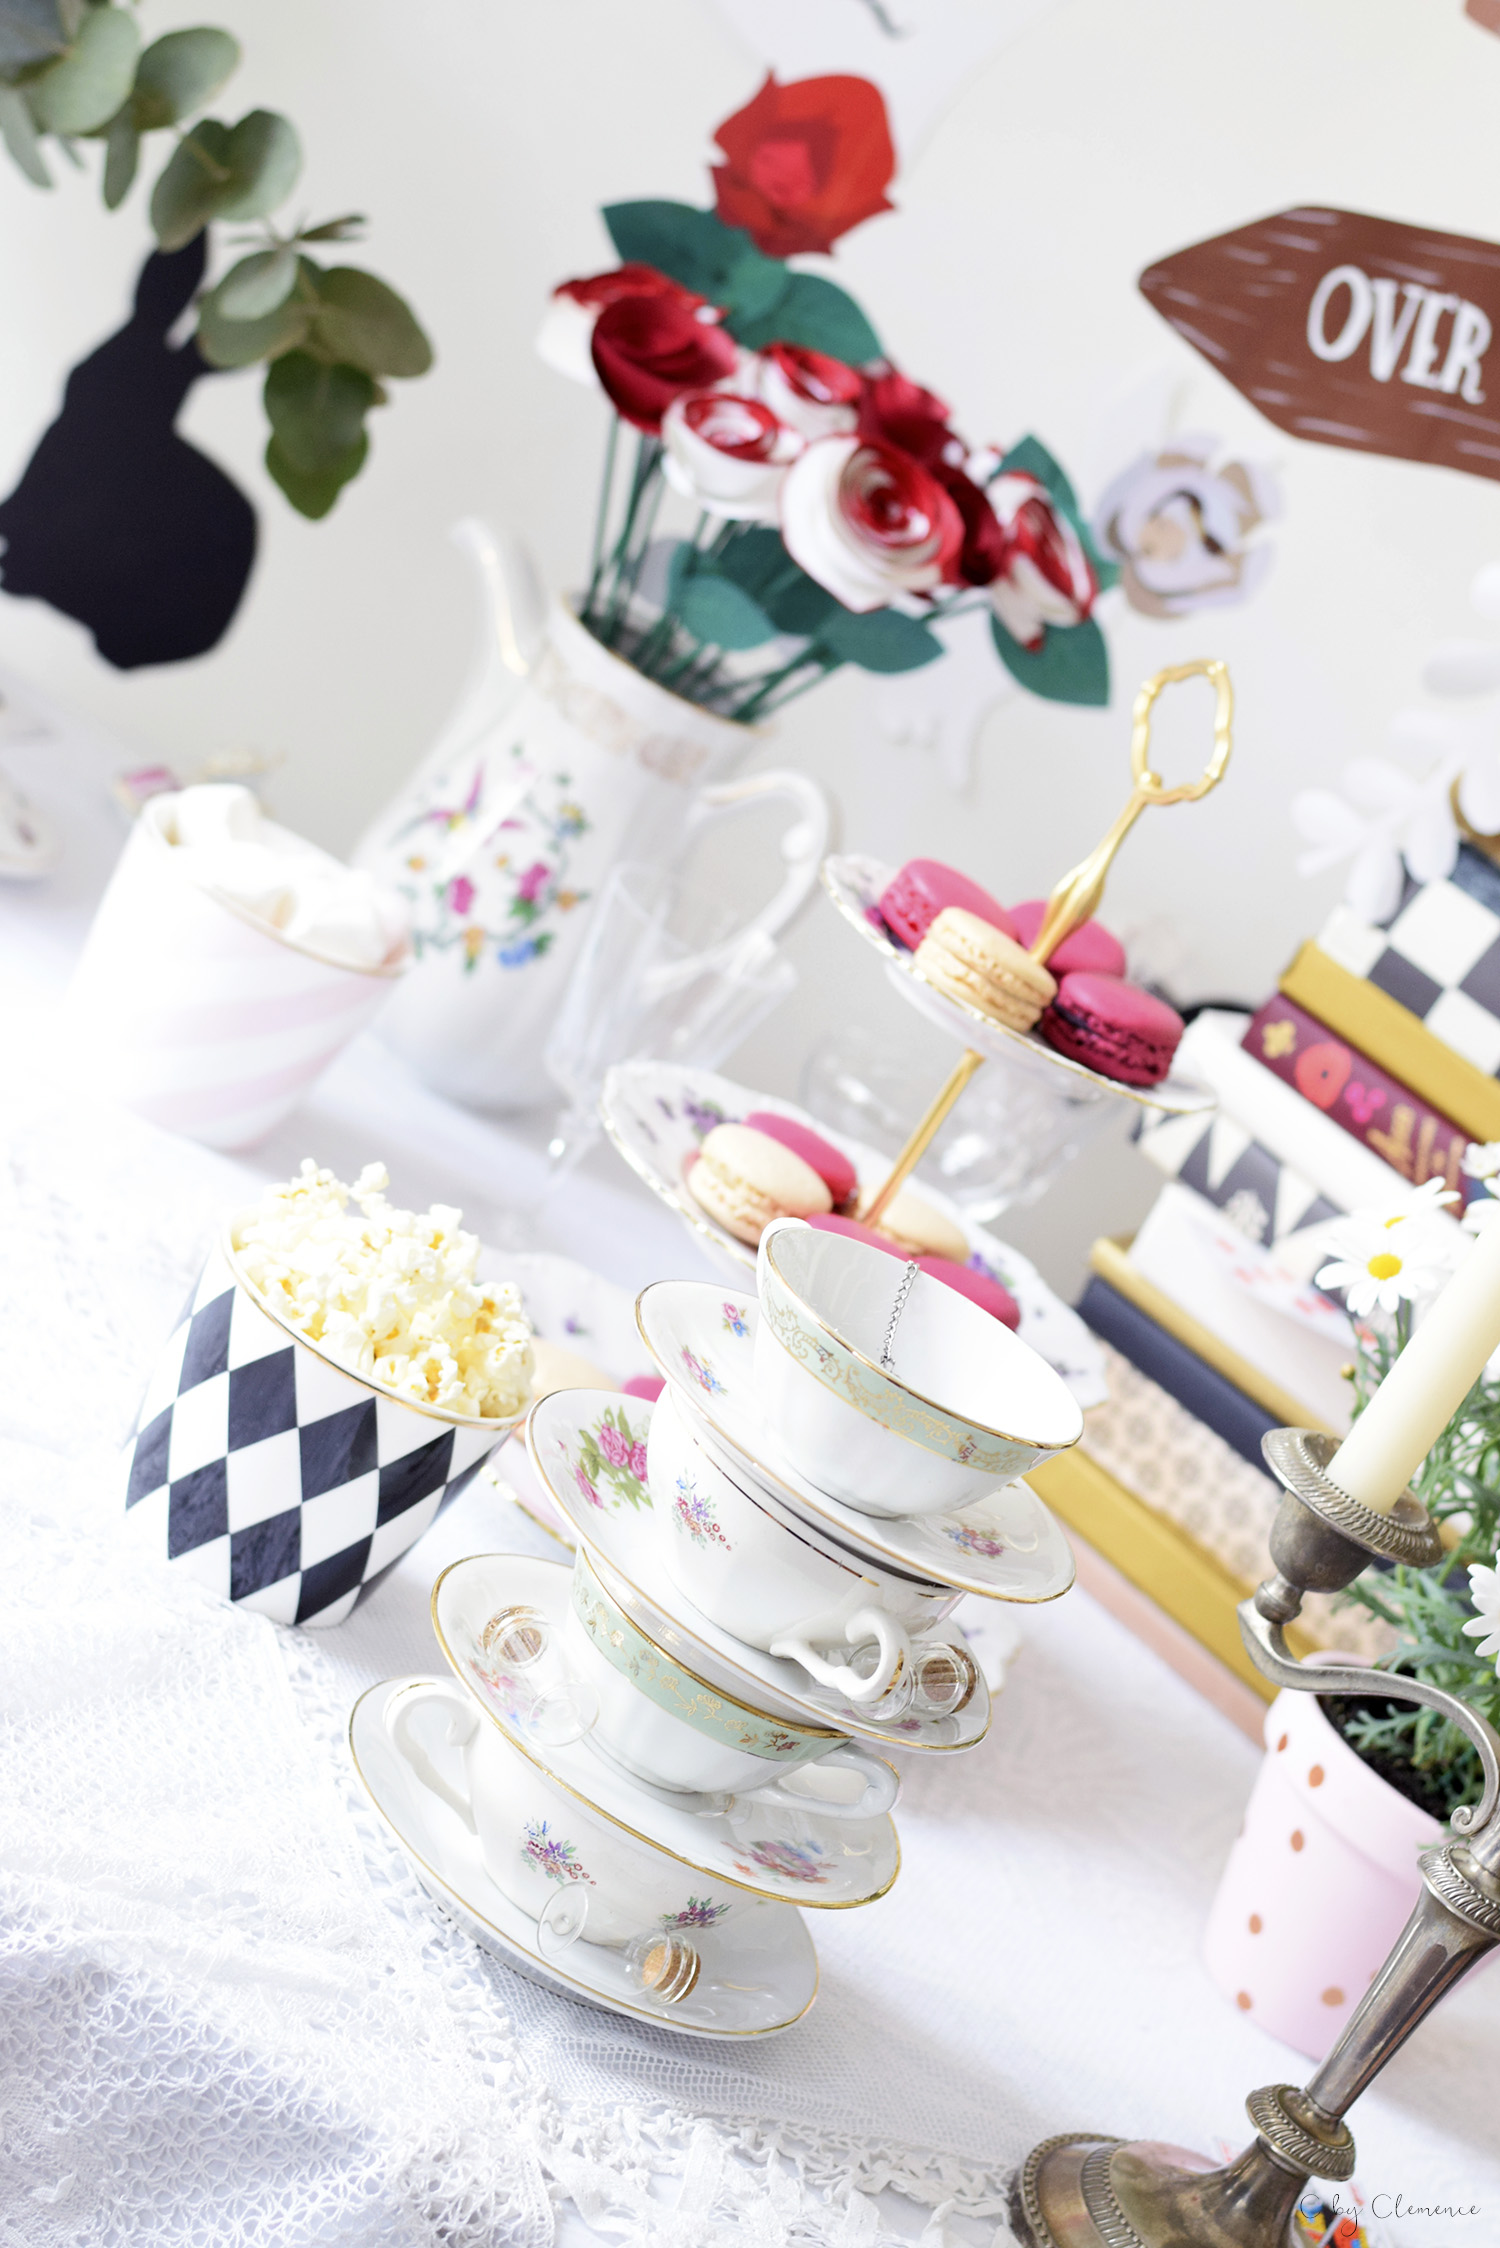 DECO MAD TEA PARTY cbyclemence.com 08